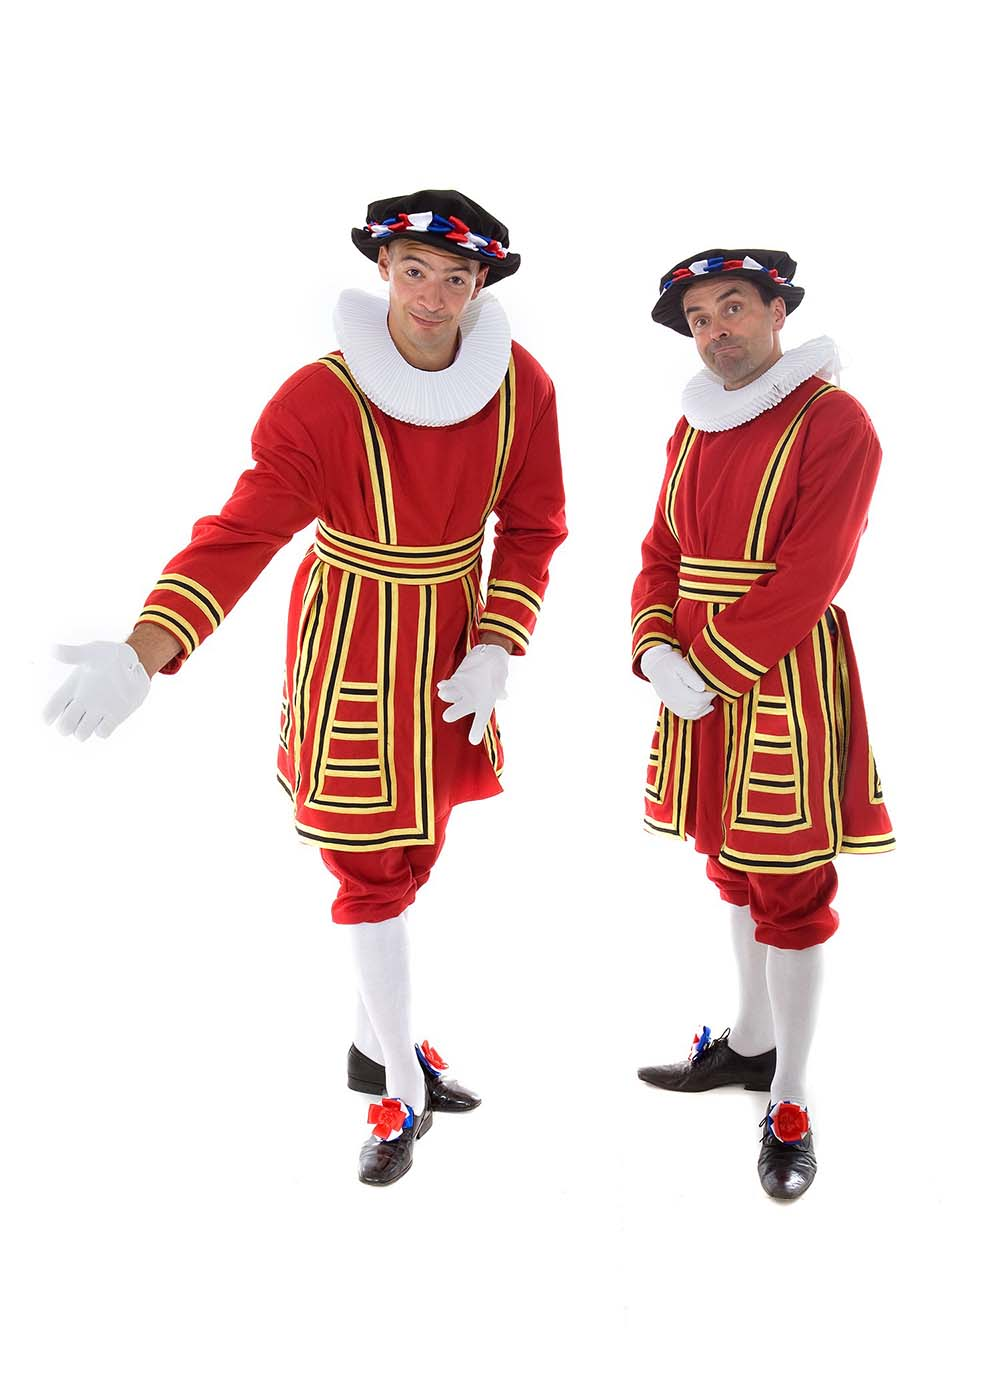 beefeaters pose